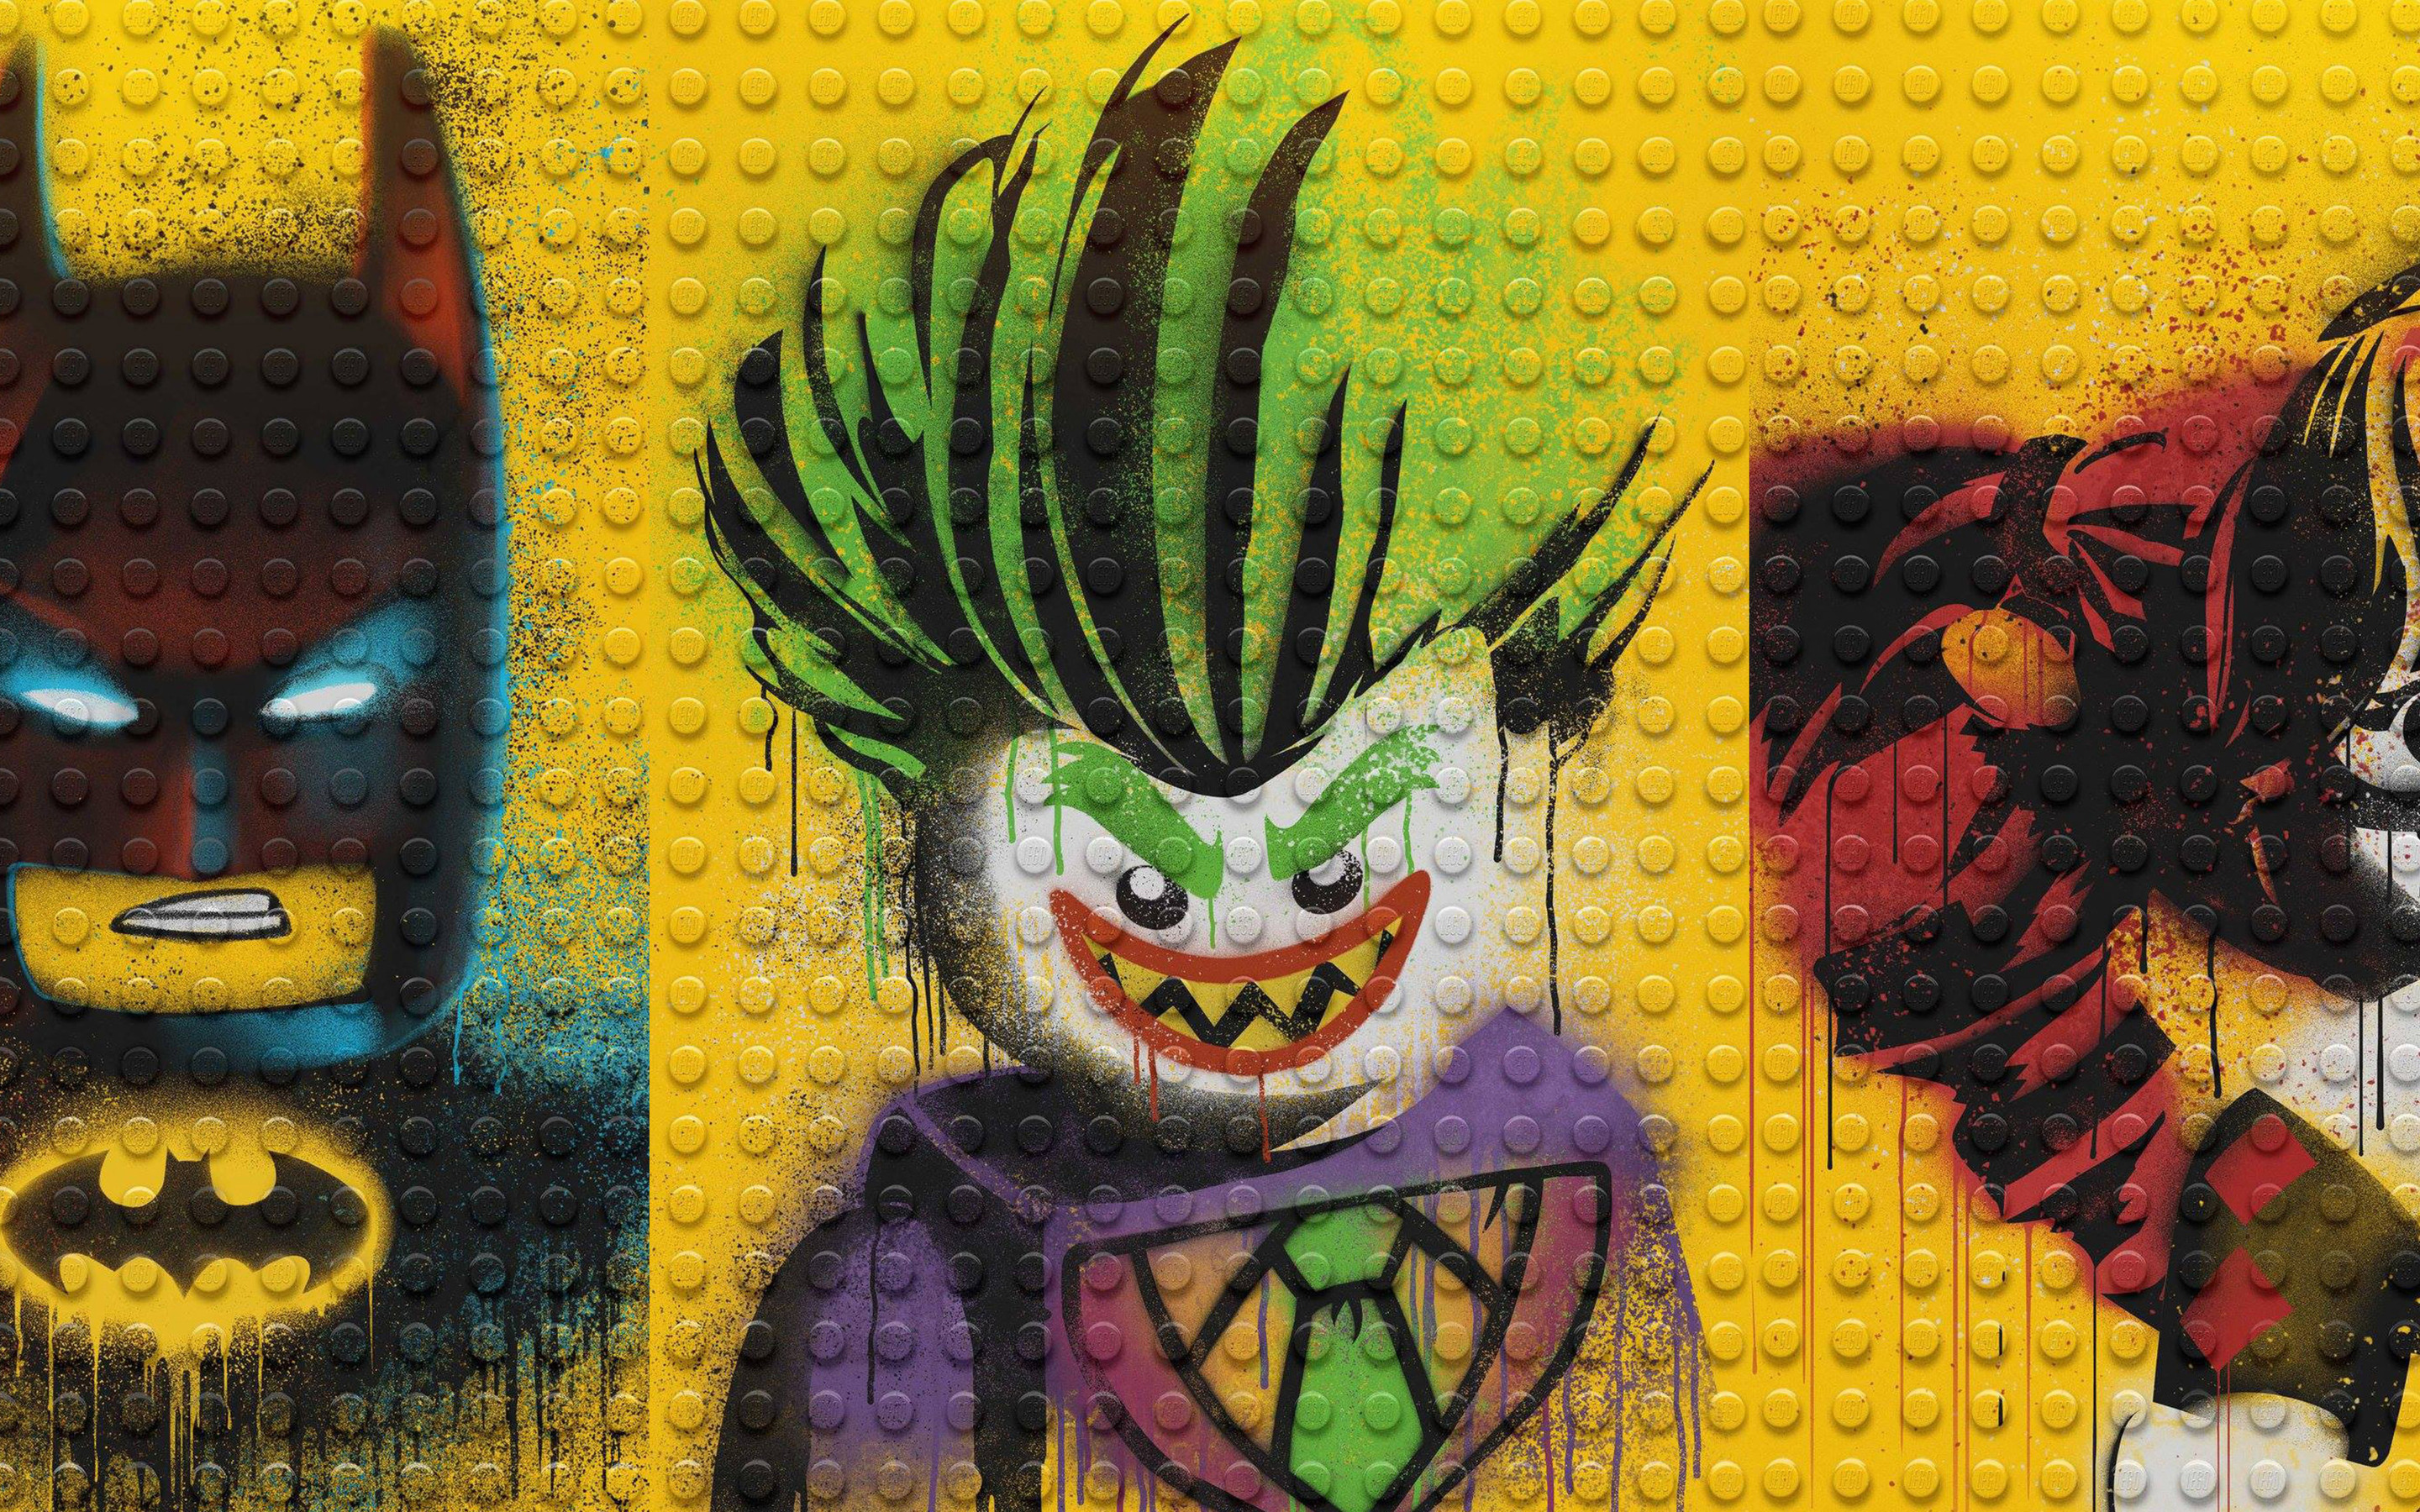 Download The Lego Batman Harley Quinn And Joker HD 4k Wallpapers In